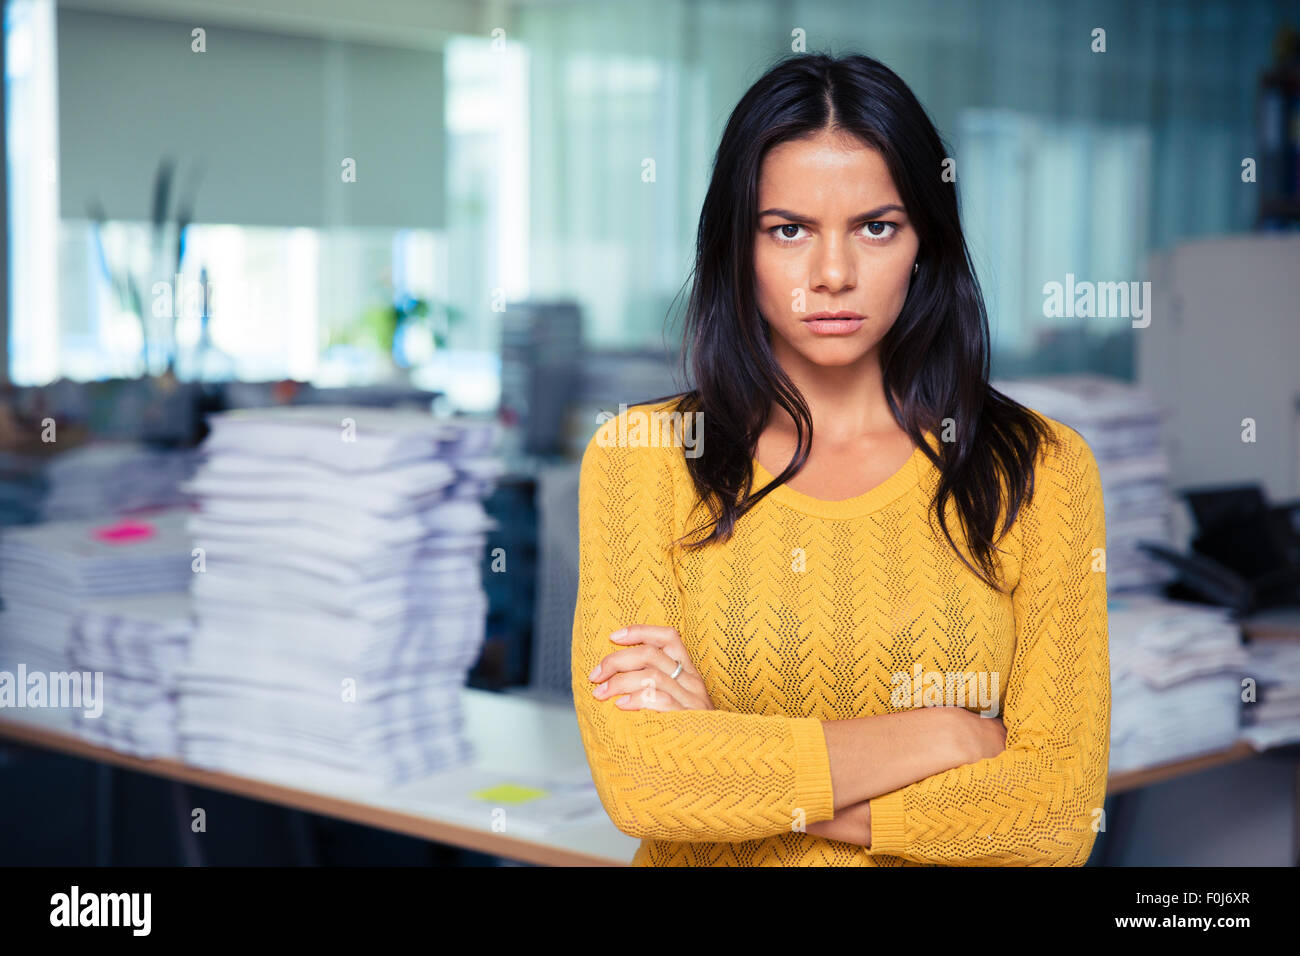 Portrait of angry businesswoman standing with arms folded in office Photo Stock